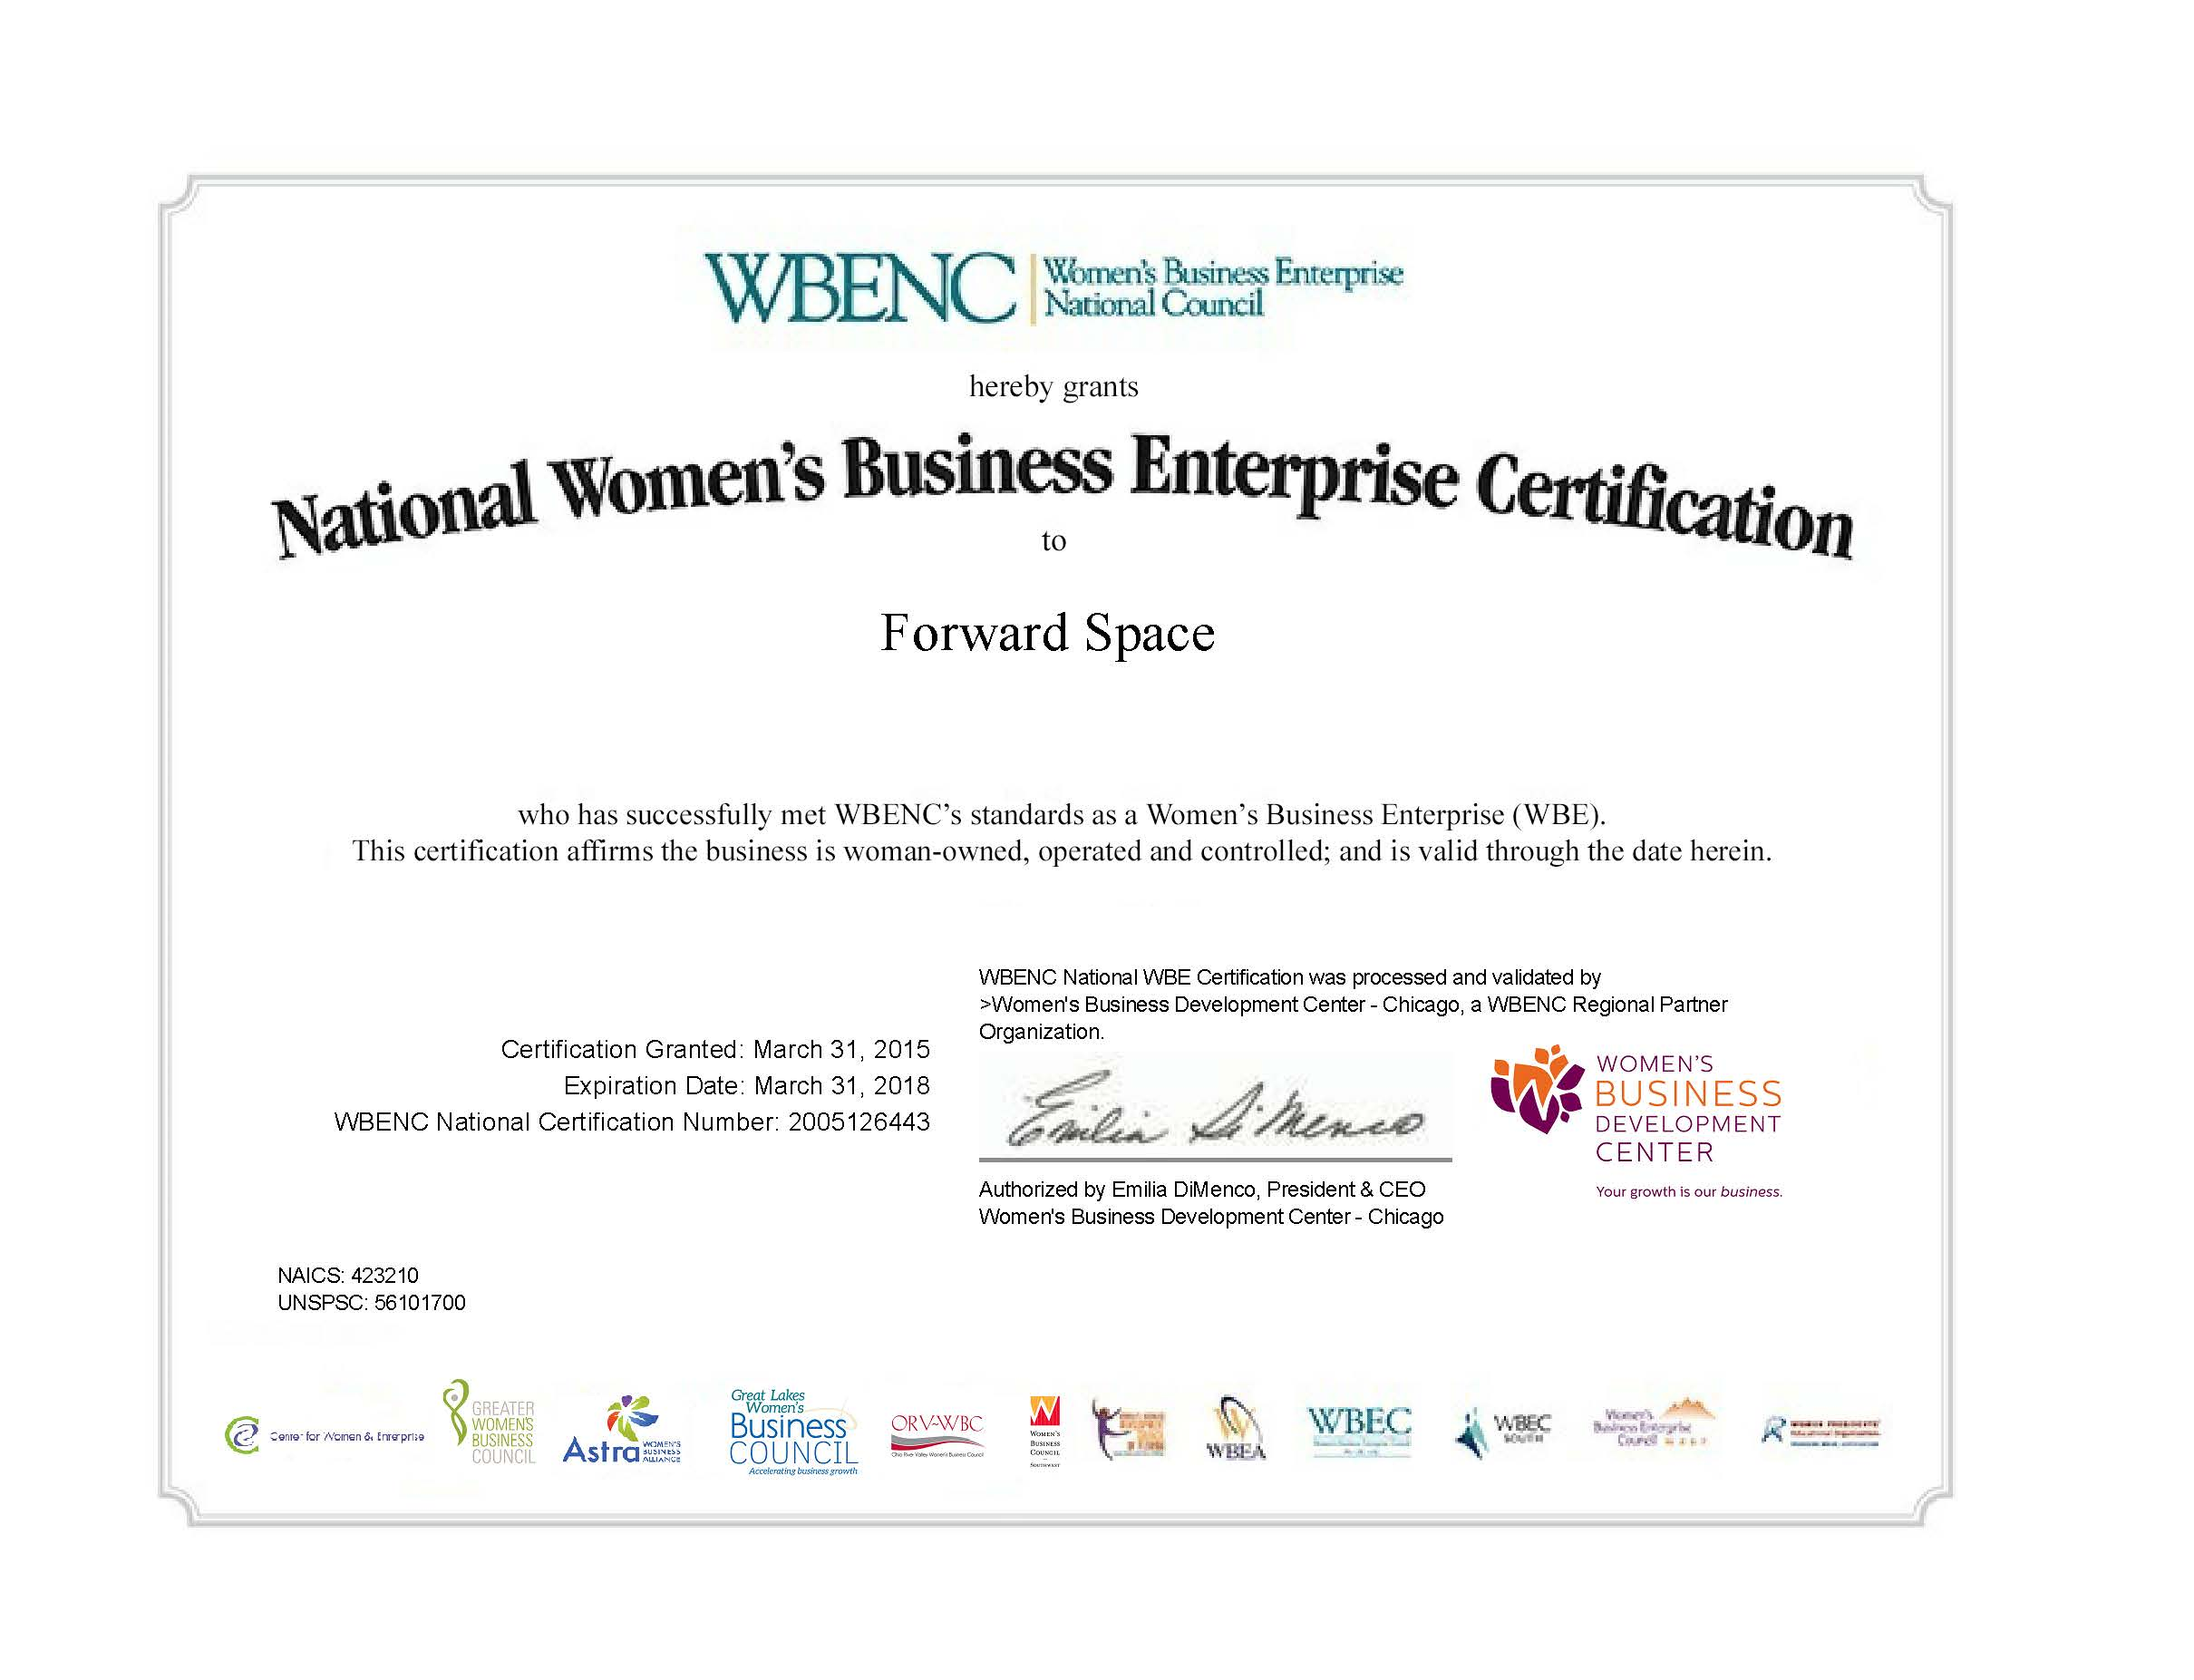 Forward-Space-WBE-Certificate-with-WBENC-exp03-31-2018